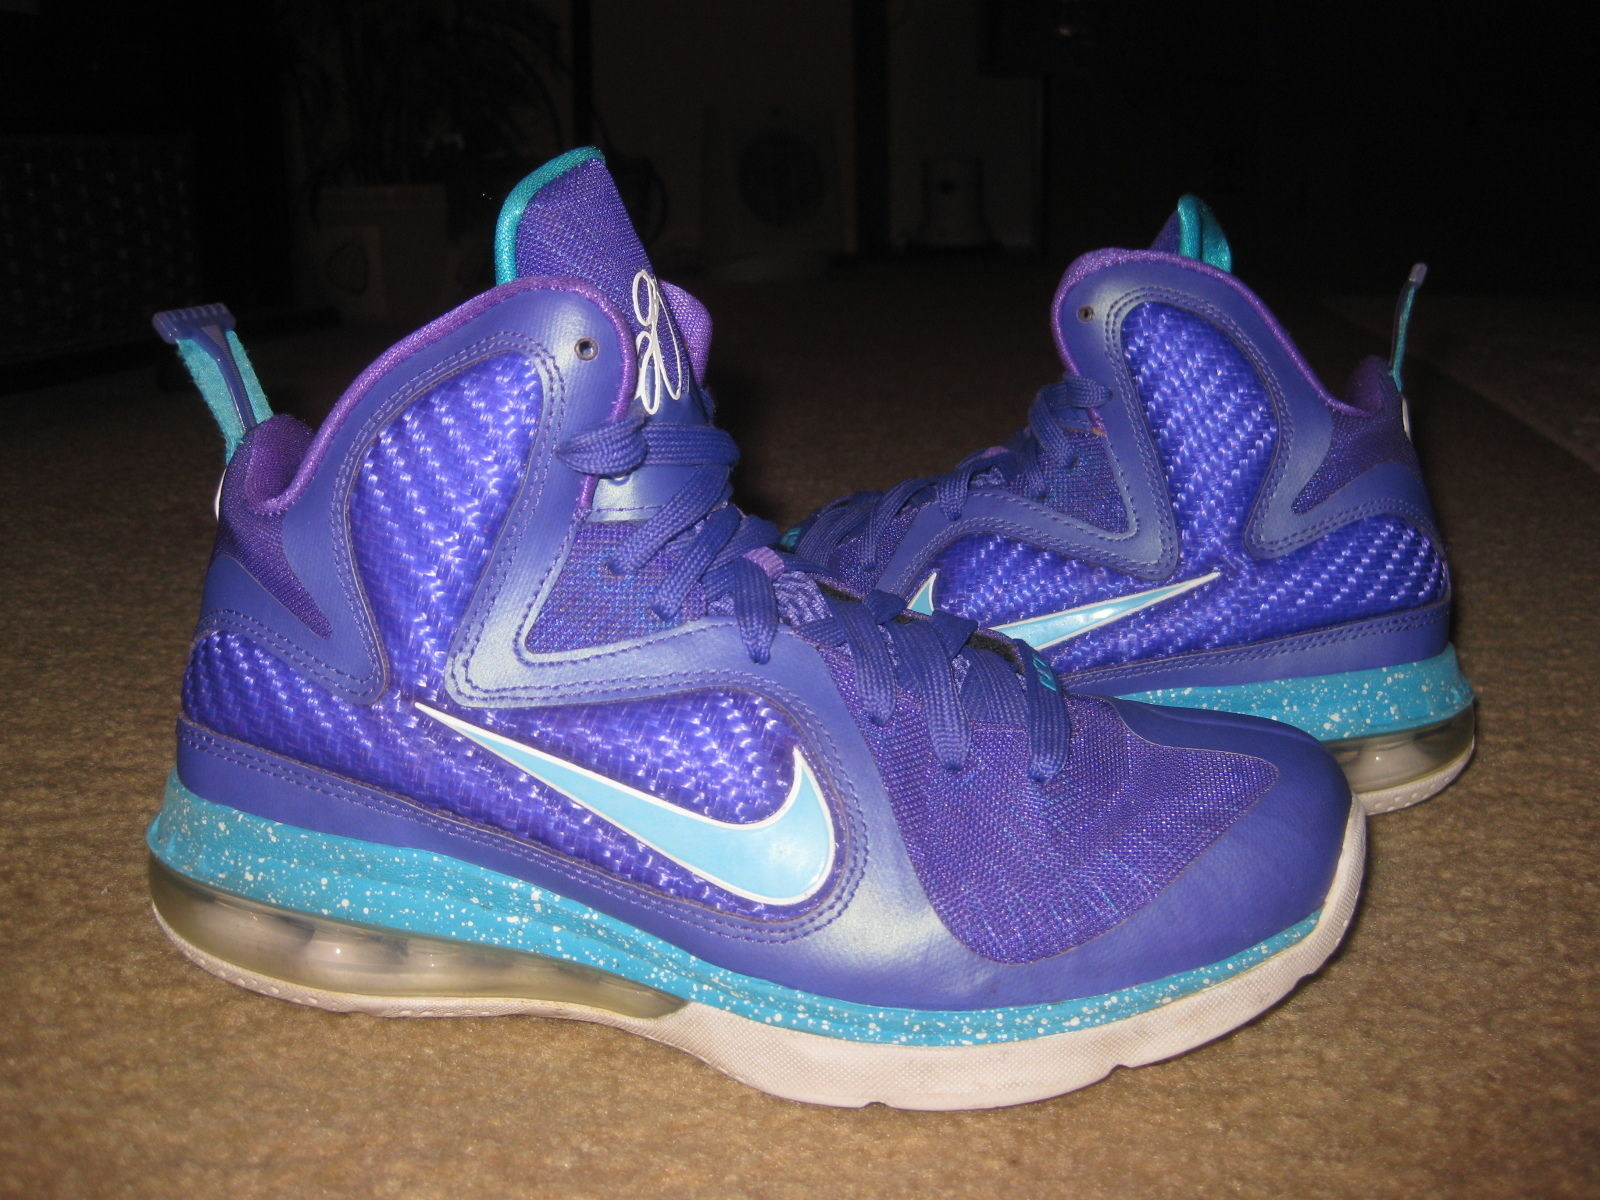 90ed1ab47d4 S l1600. S l1600. Previous. NIKE LEBRON JAMES 9 GS SUMMIT LAKE HORNETS  472664-500 US SIZE 5Y KIDS NICE